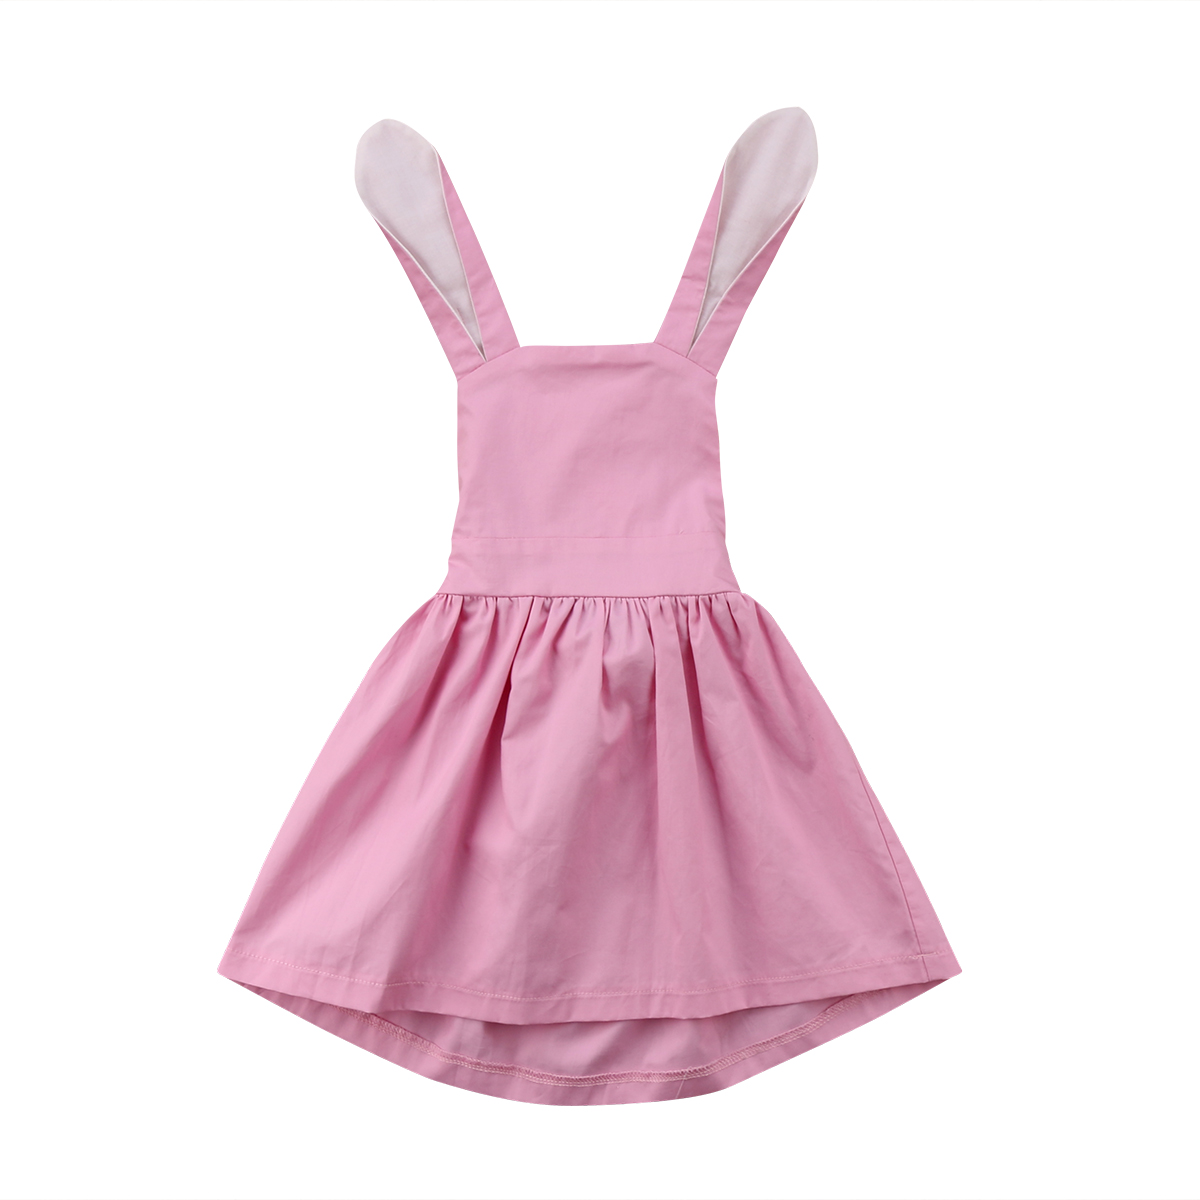 816f692f3a82 Detail Feedback Questions about pudcoco Child Baby Girls Pink Easter ...